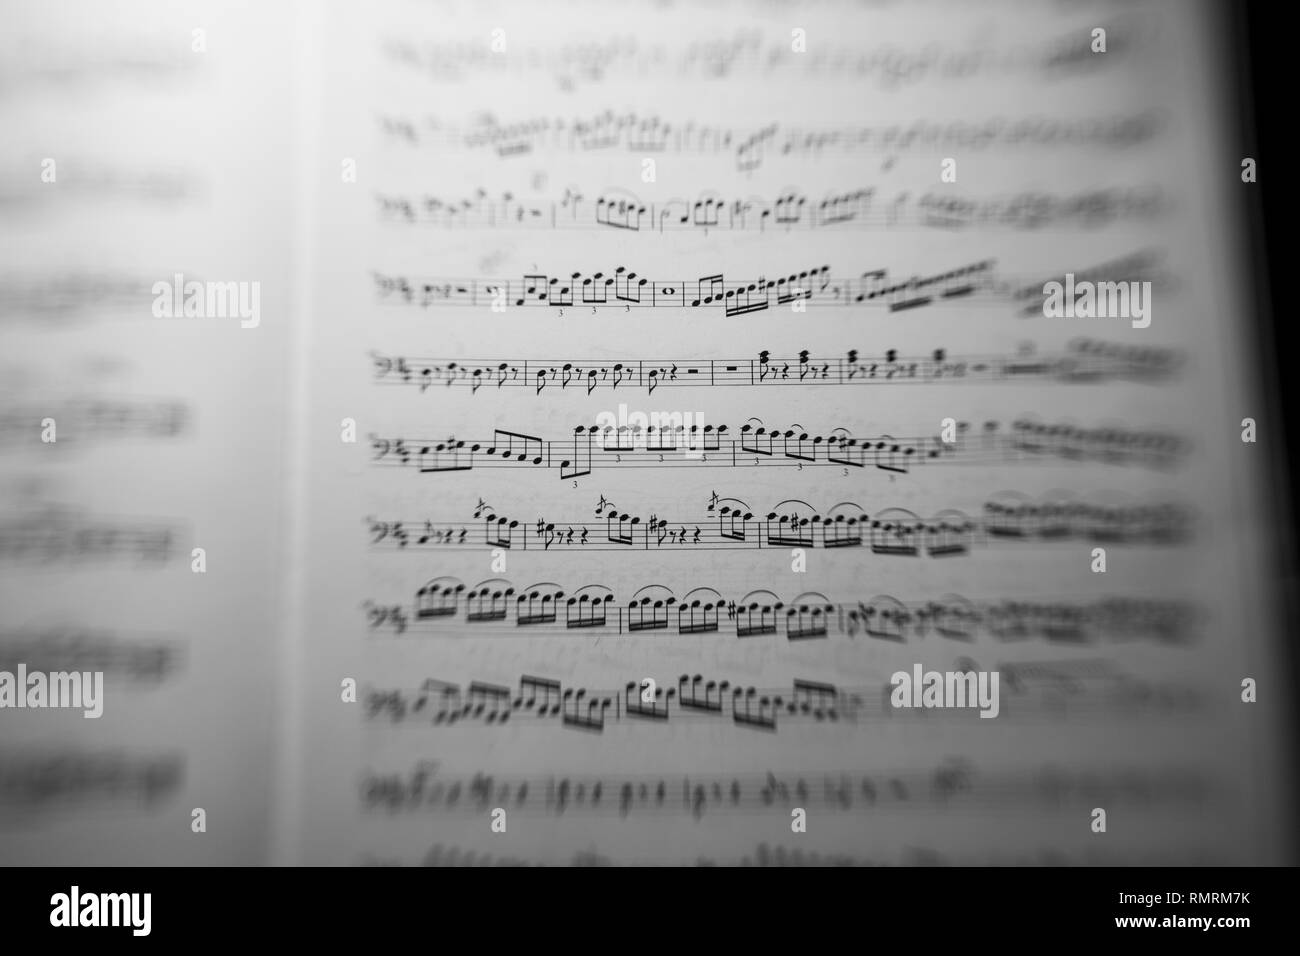 Sheet music for classical music with focus on center frame to convey concept of intensity or focus - Stock Image